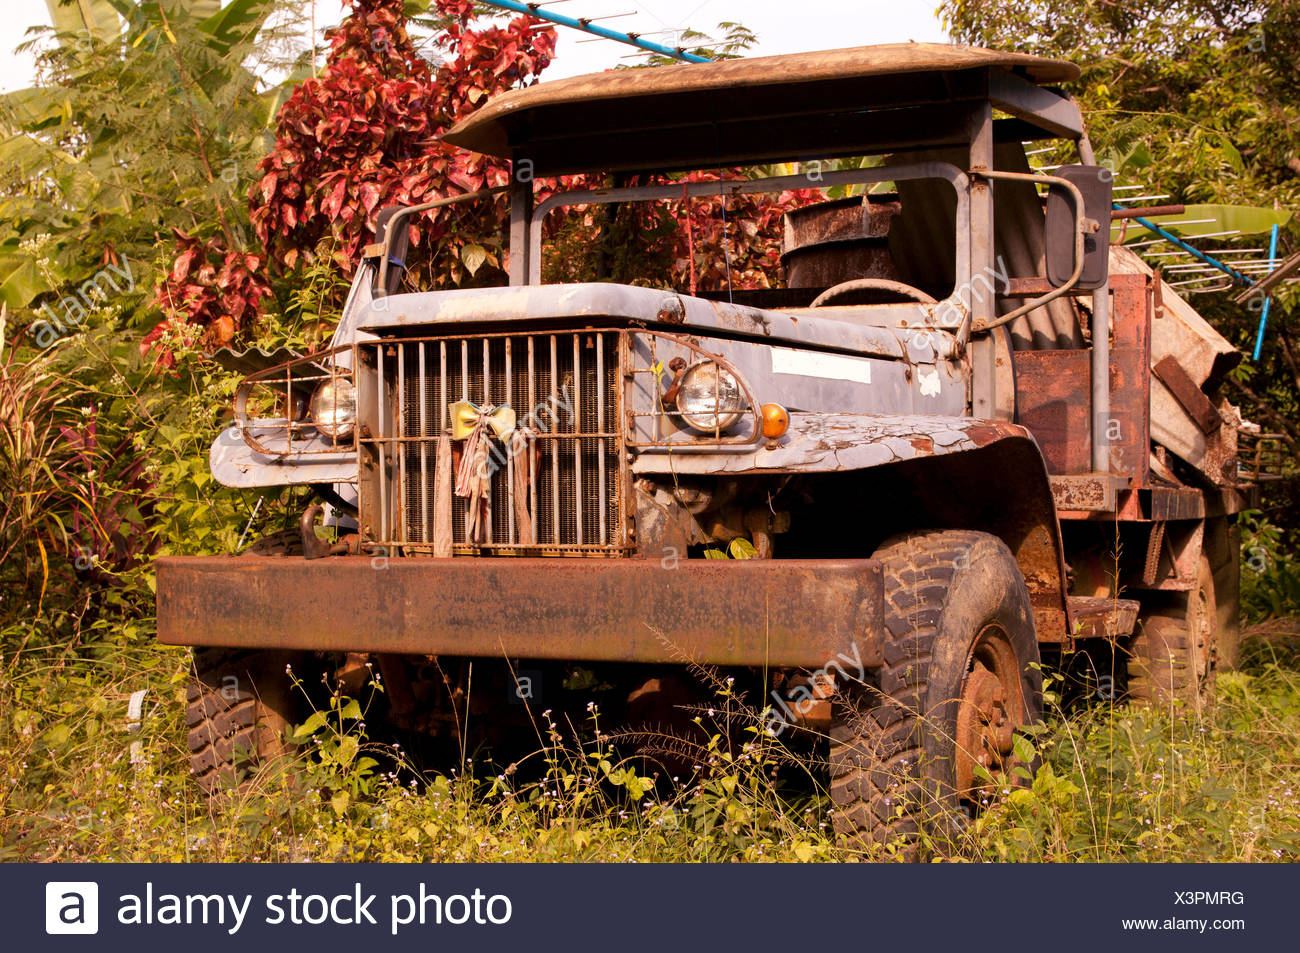 Vieux camion, Thailande, Asie, rouillé, fonds, backgrounds, Photo Stock